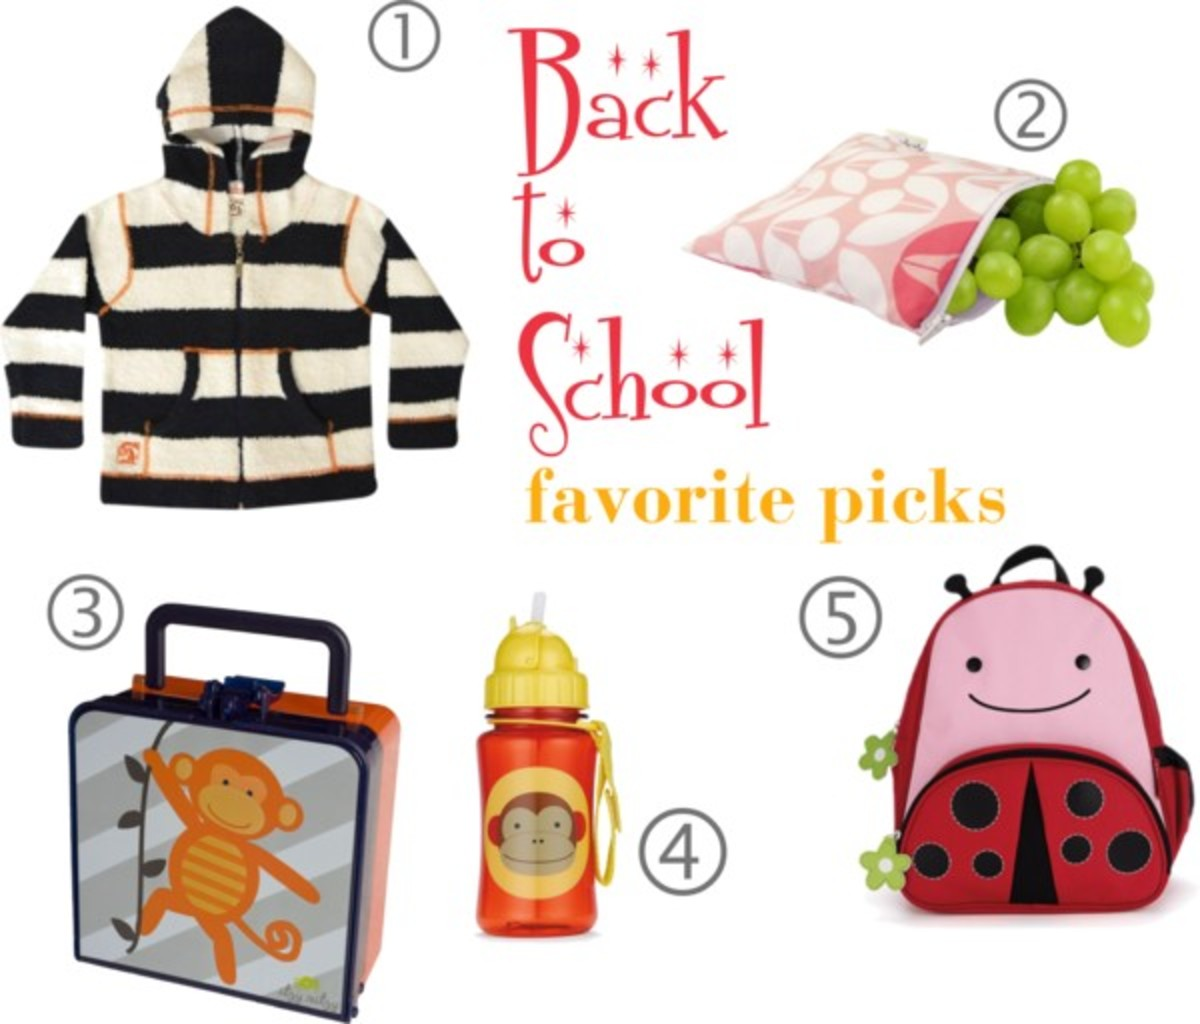 back to school trends, lunchboxes, bento boxes for kids, cool backbacks, layla grayce back to school